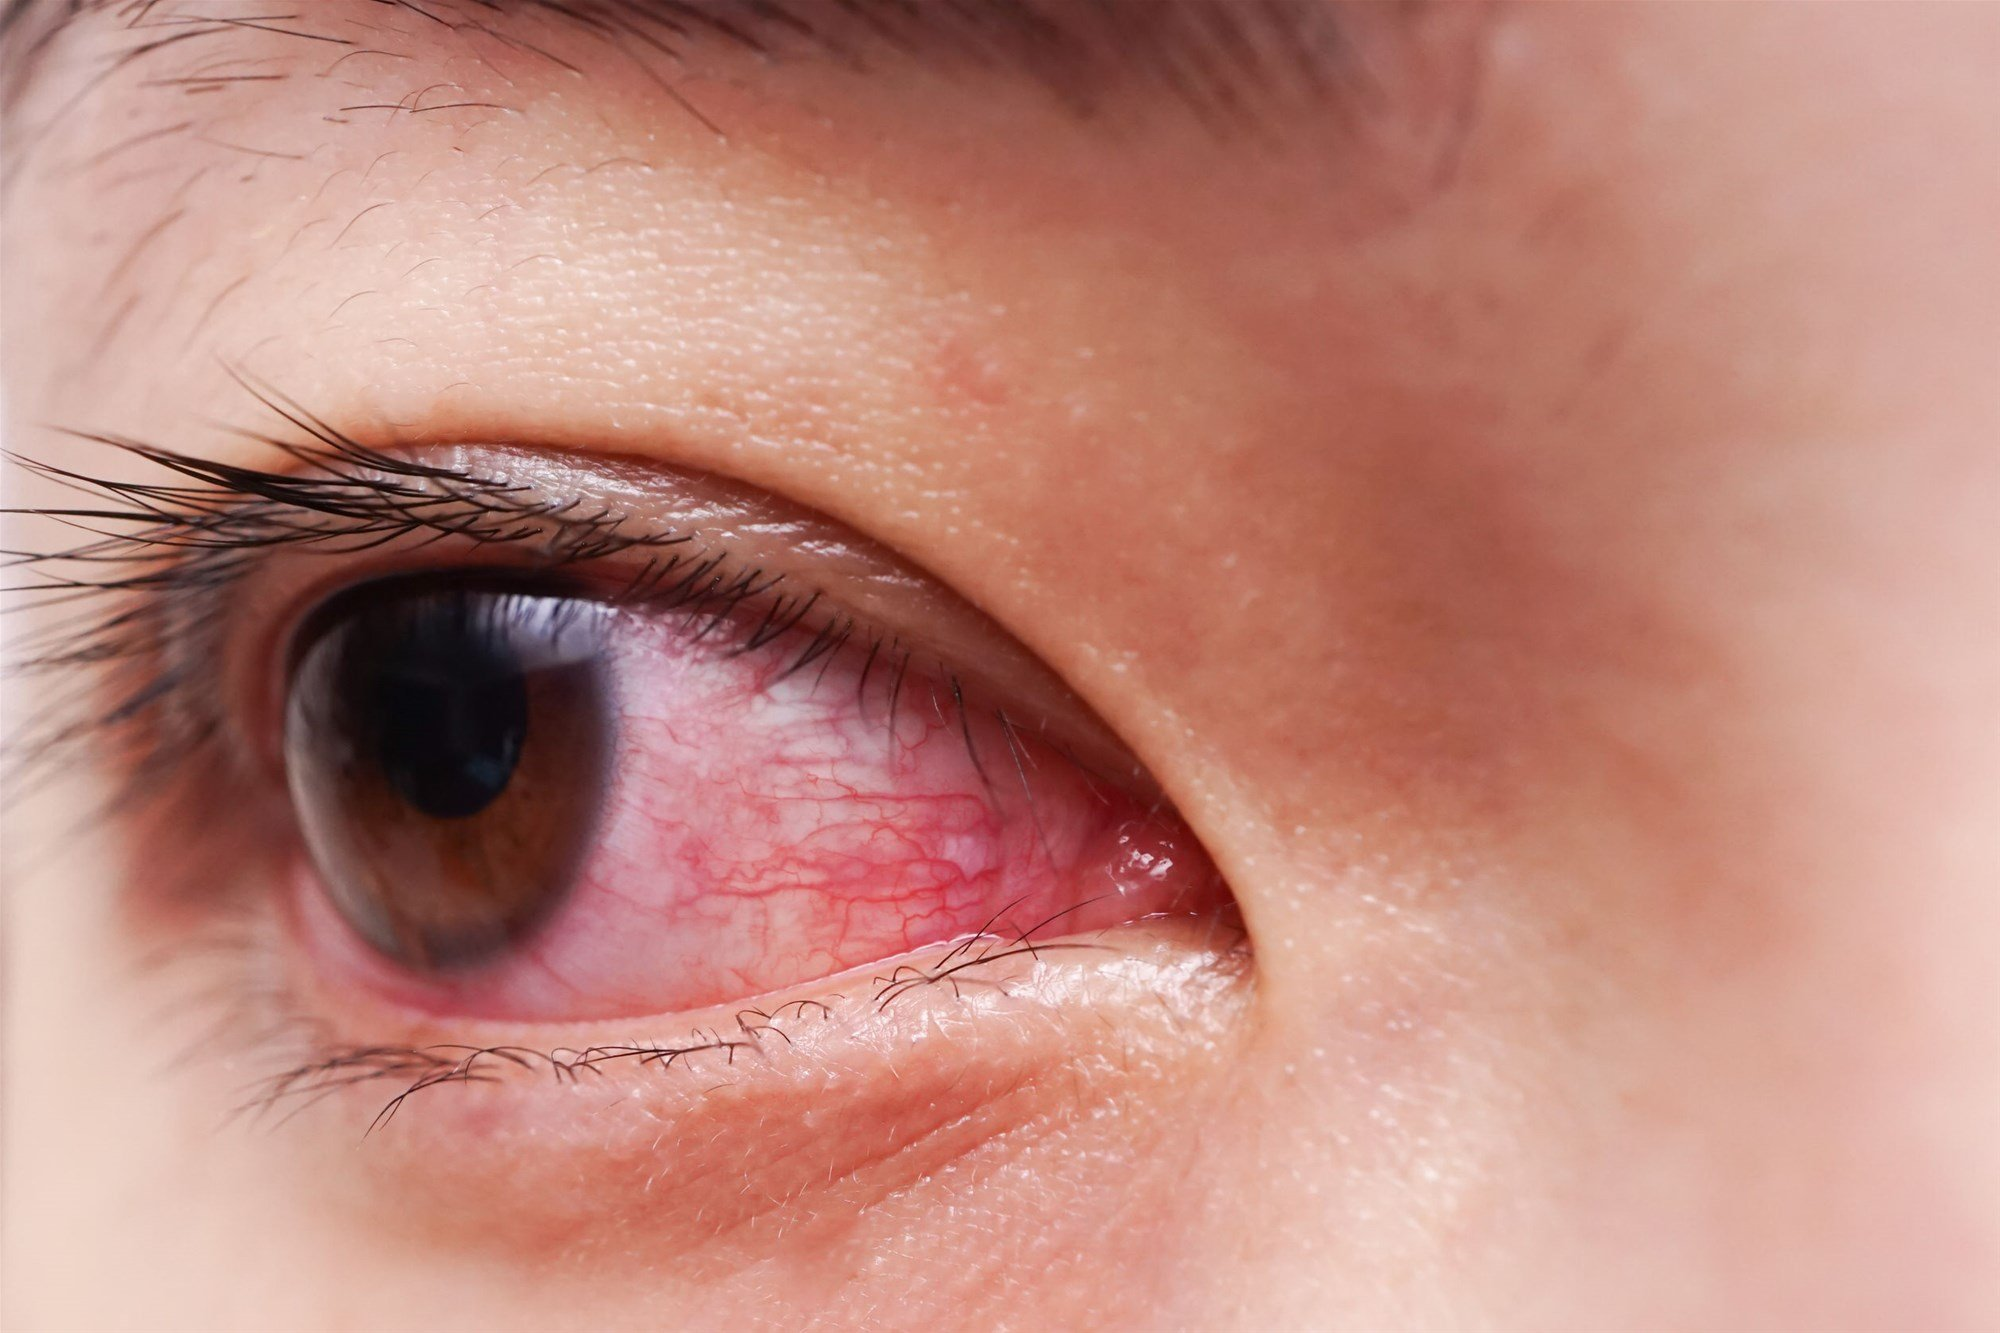 Red Eyes Water And Discharge After Using Contact Lenses?